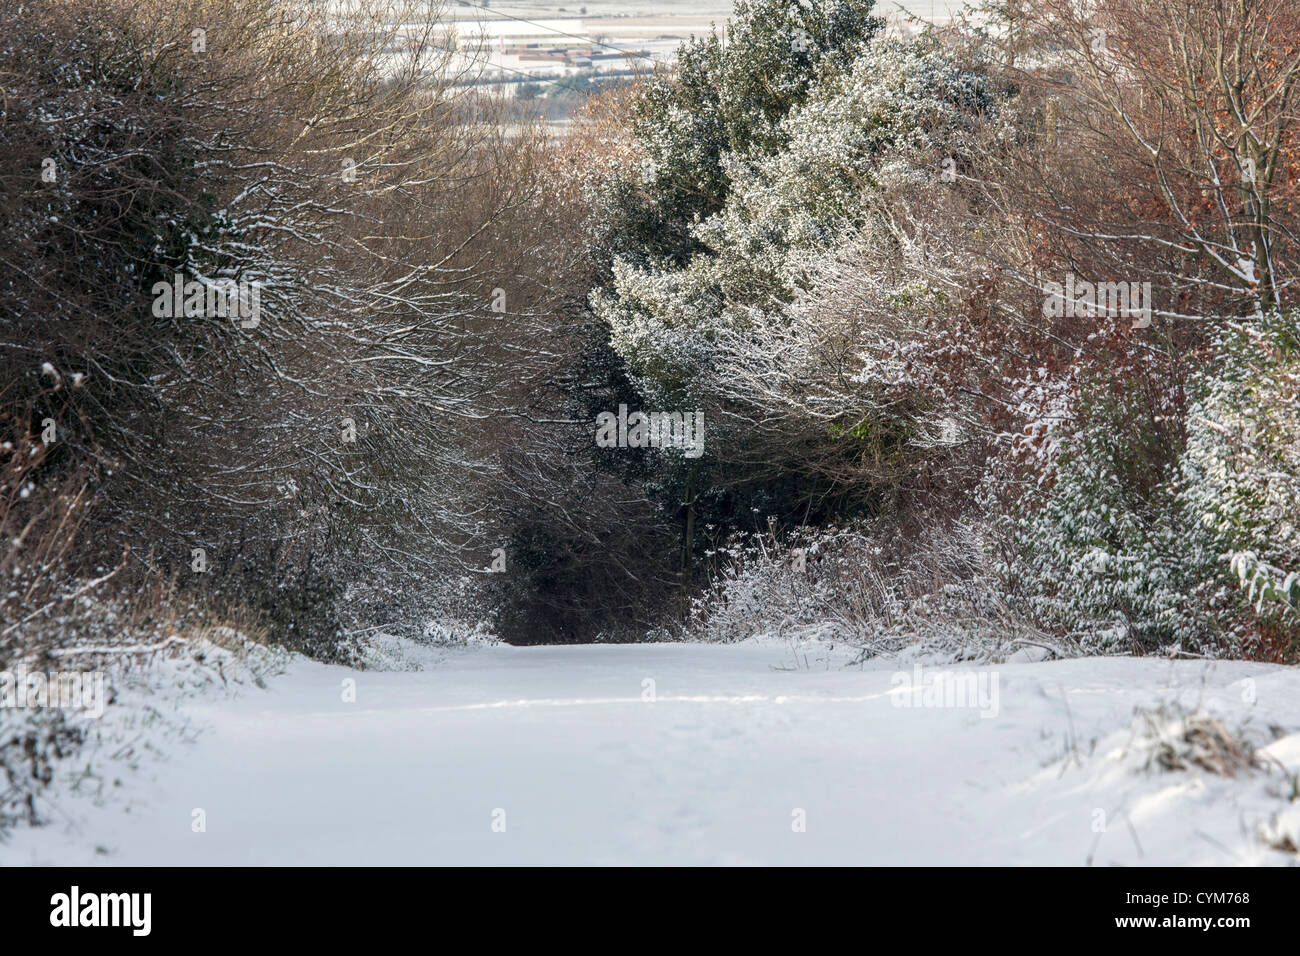 A snow covered lane with trees and hedgerows in winter - Stock Image